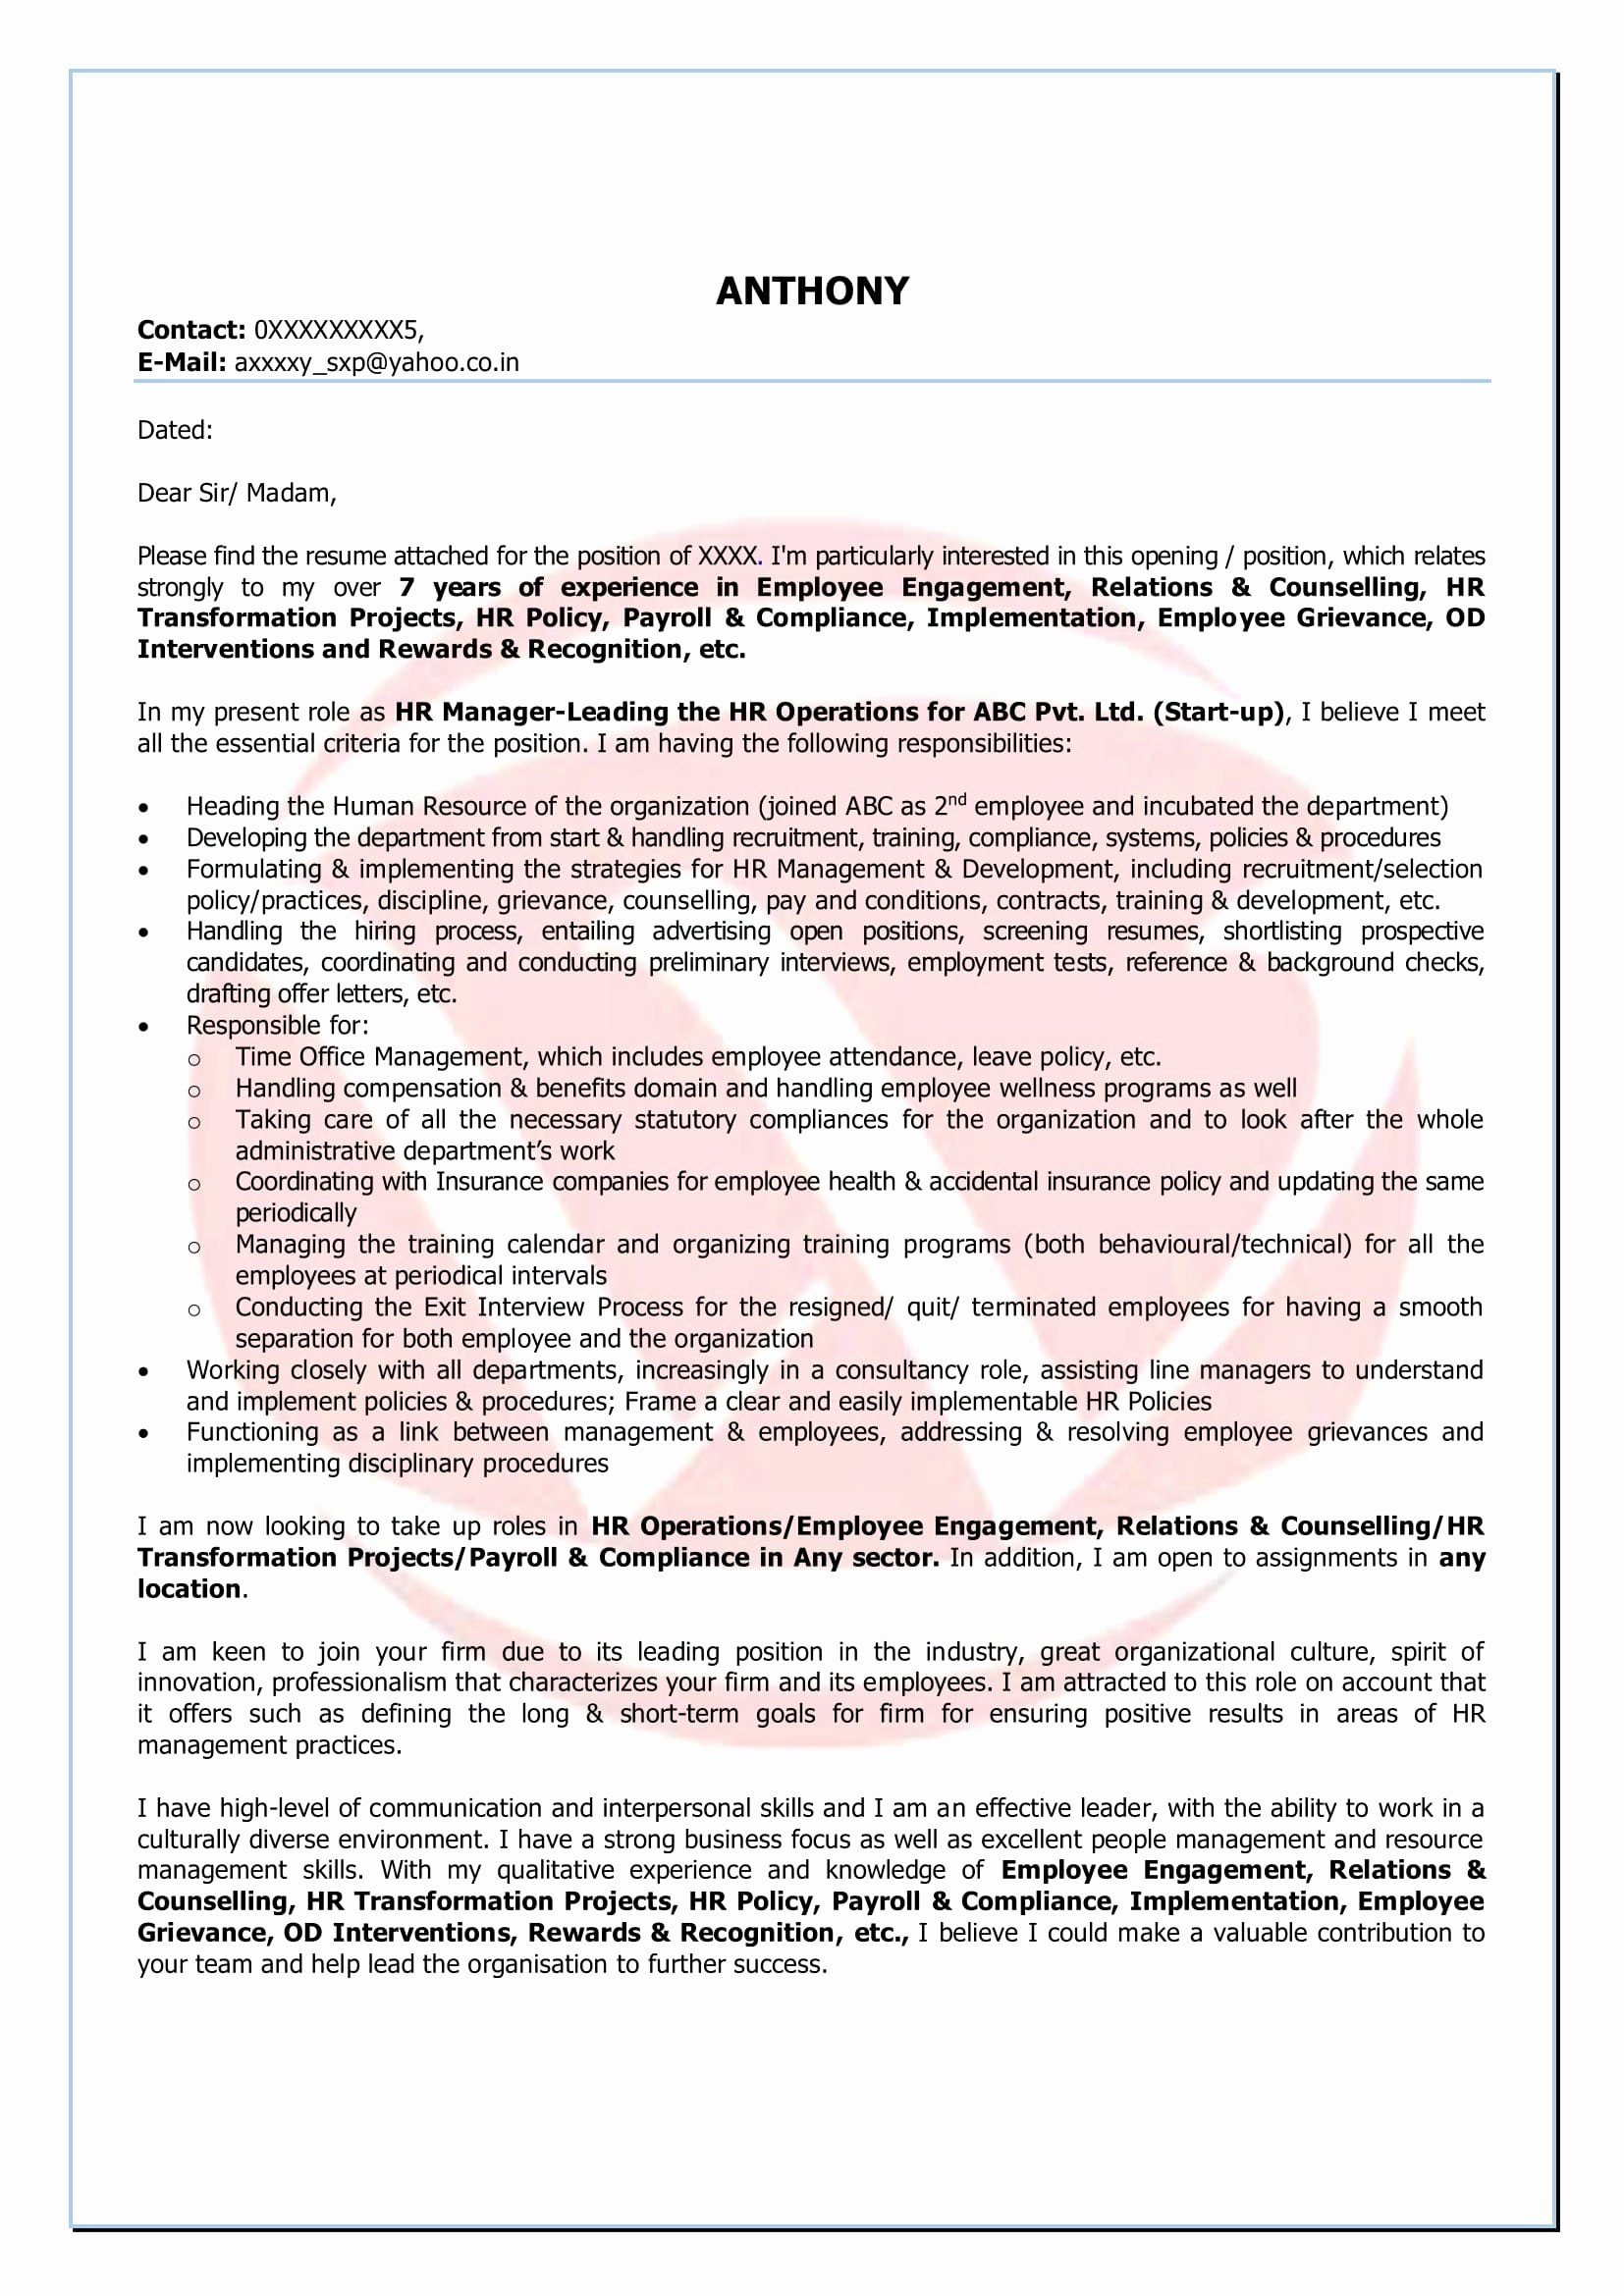 collaborate synonym resume example-Collaborate Synonym Resume 14-g